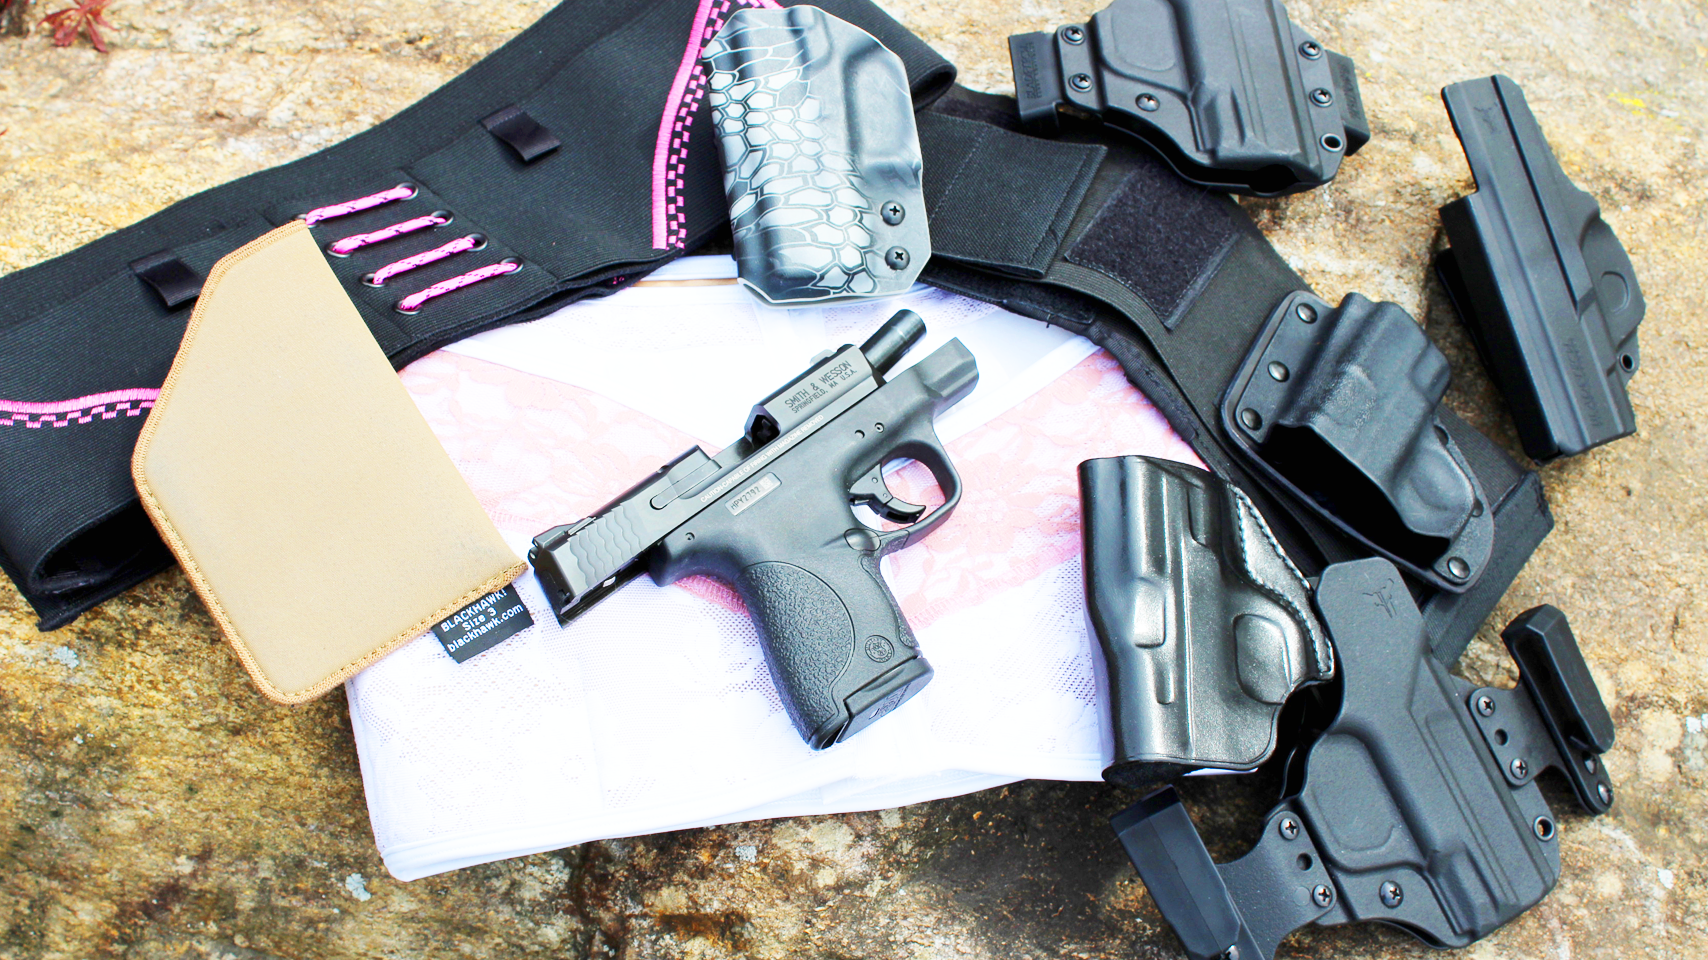 Holster Review: New Holsters for Women